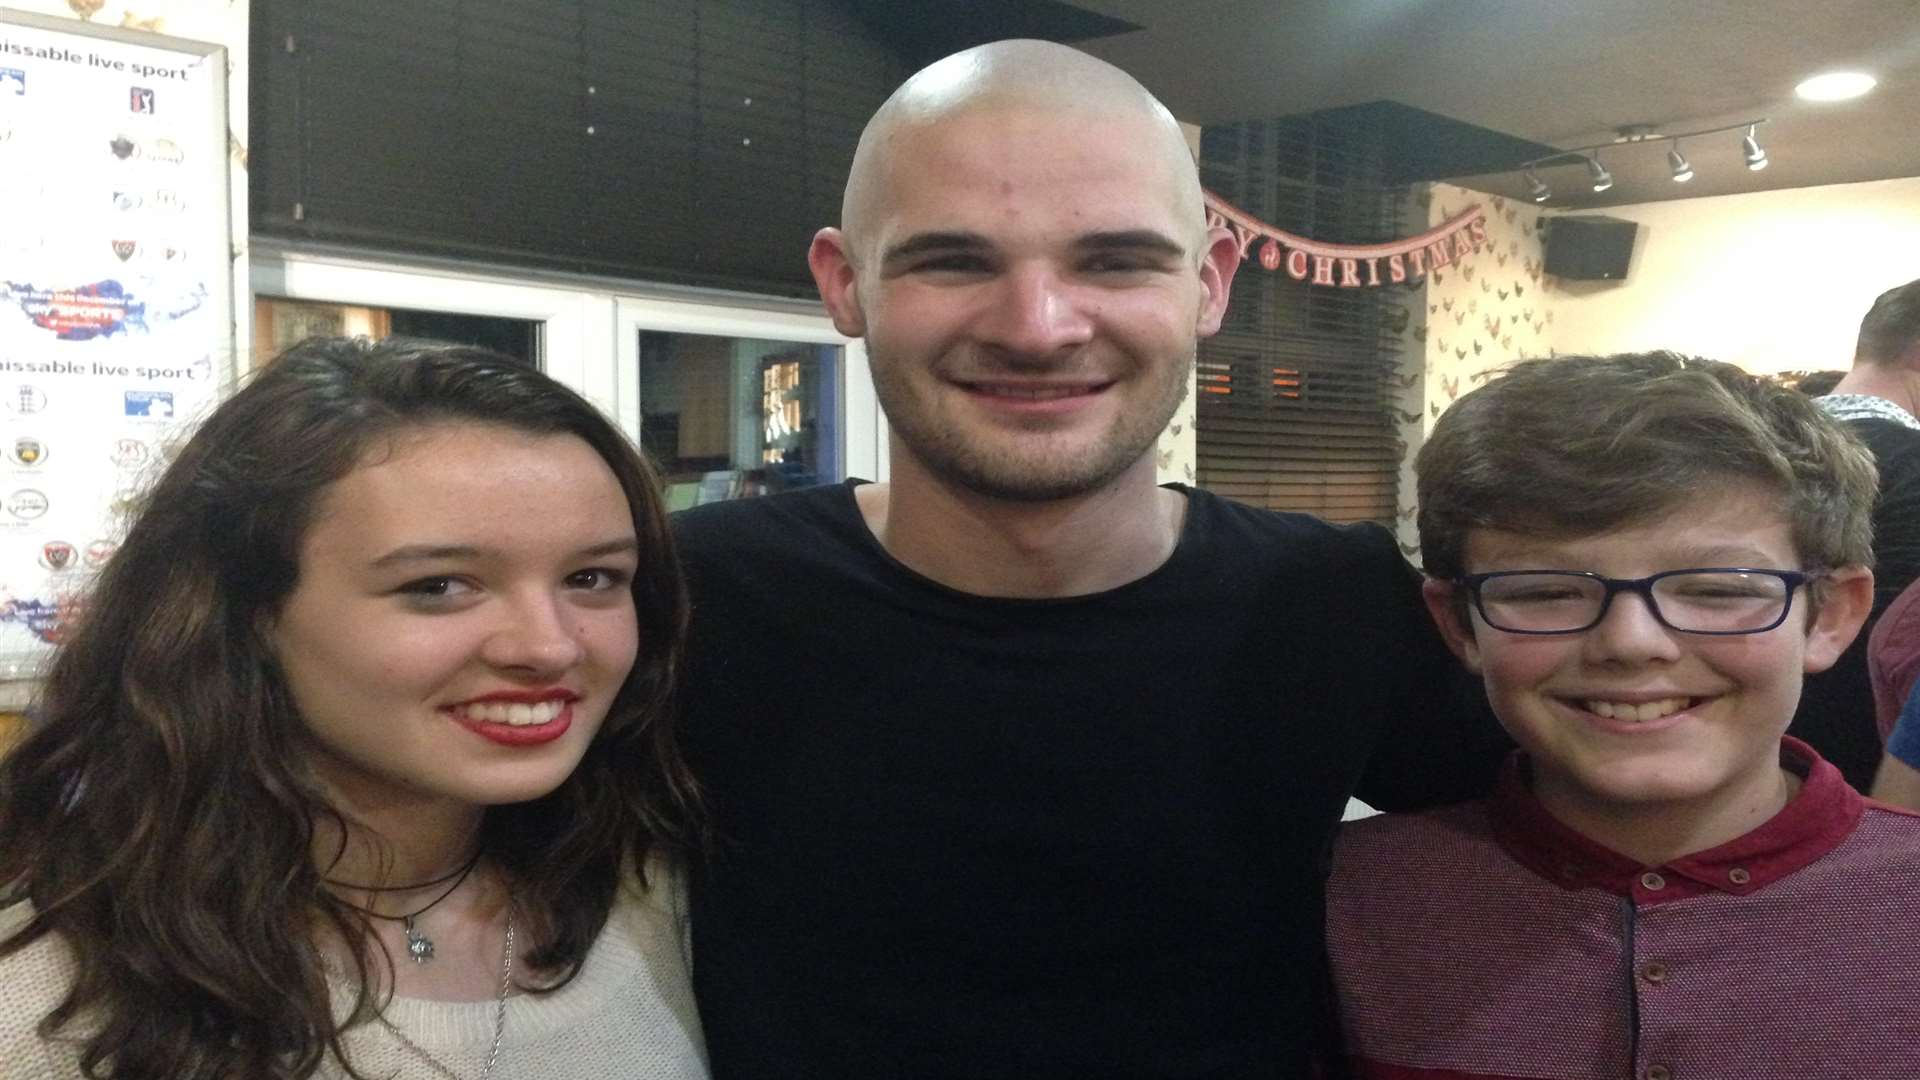 Jon Harris after the head shave with siblings Sarah and Daniel Colyer